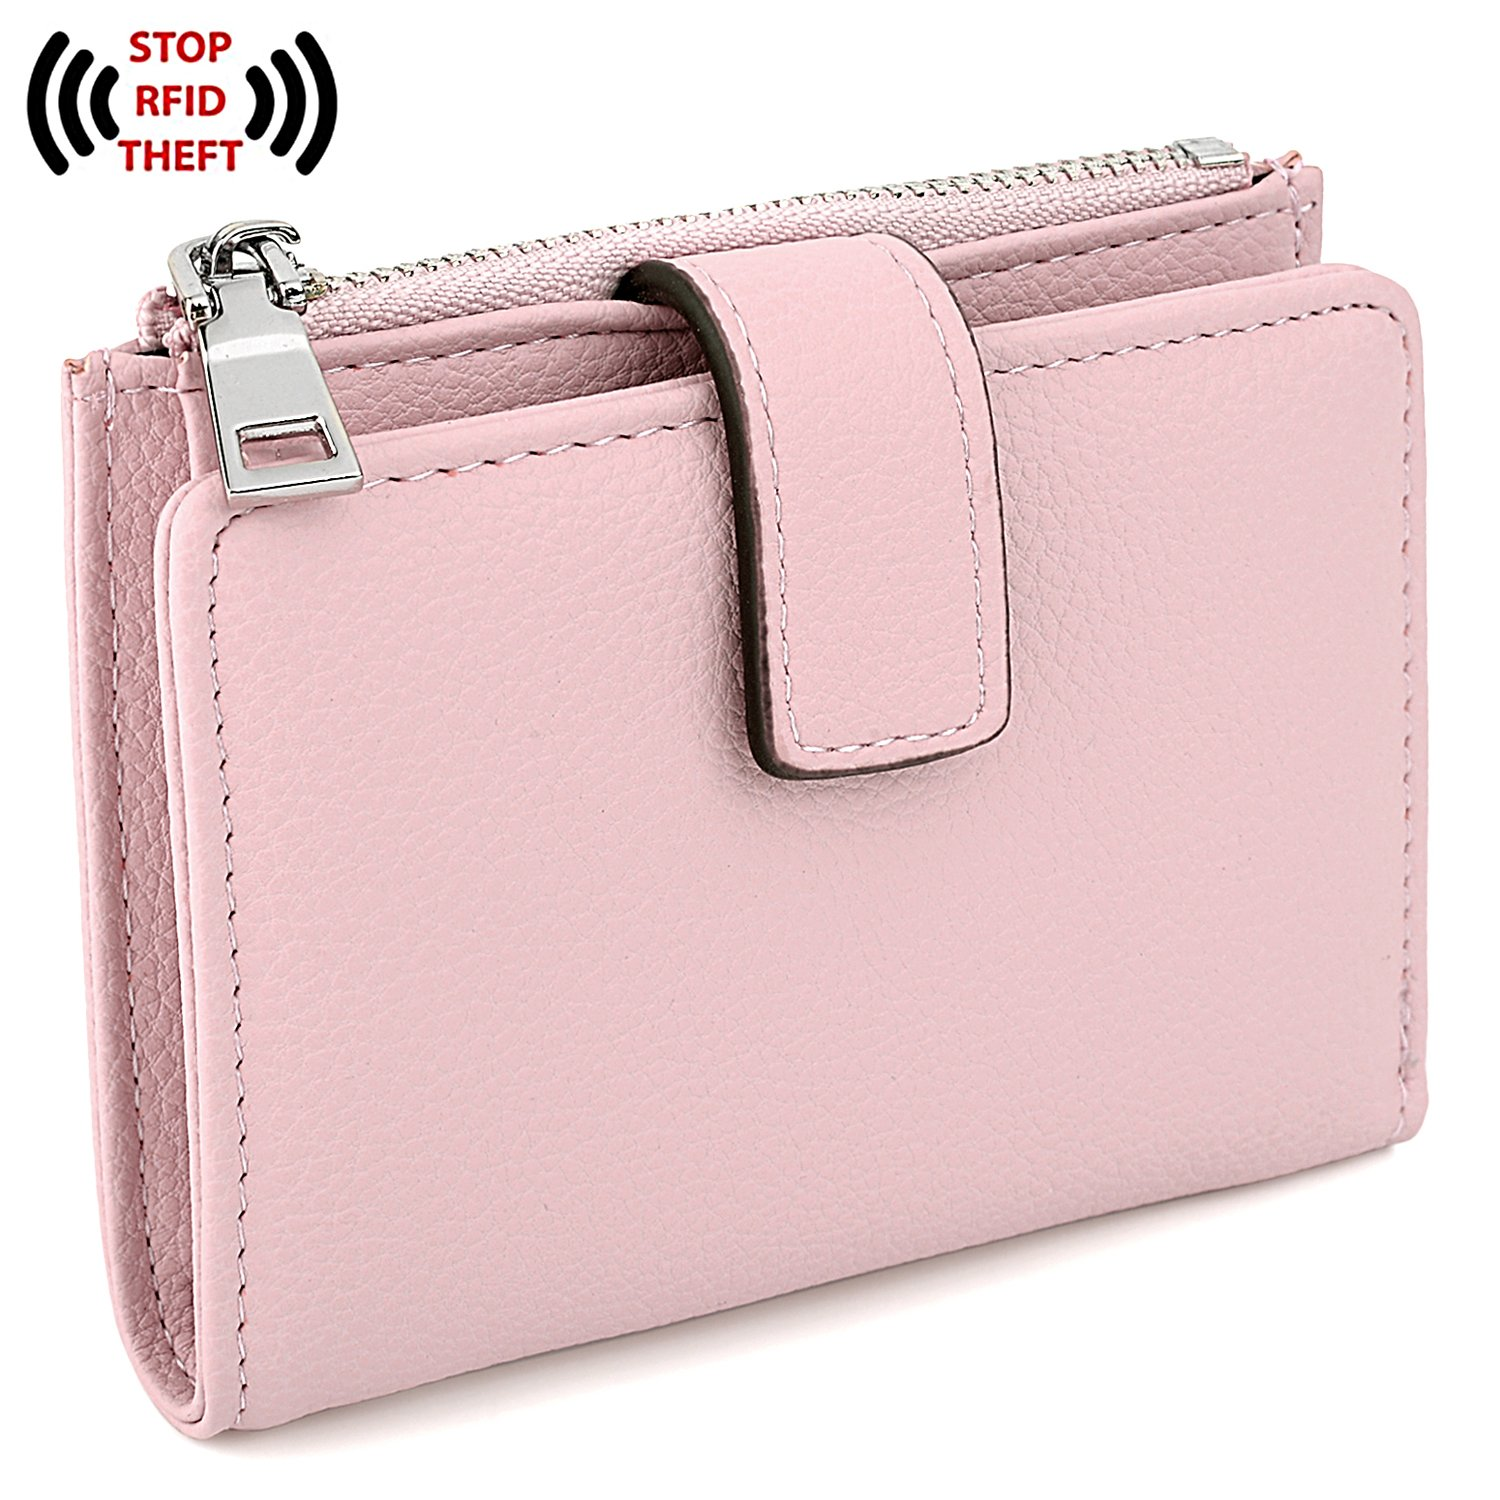 UTO Women's RFID Blocking PU Leather Wallet Card Holder Organizer Girls Small Cute Coin Purse with Snap Closure A Pink